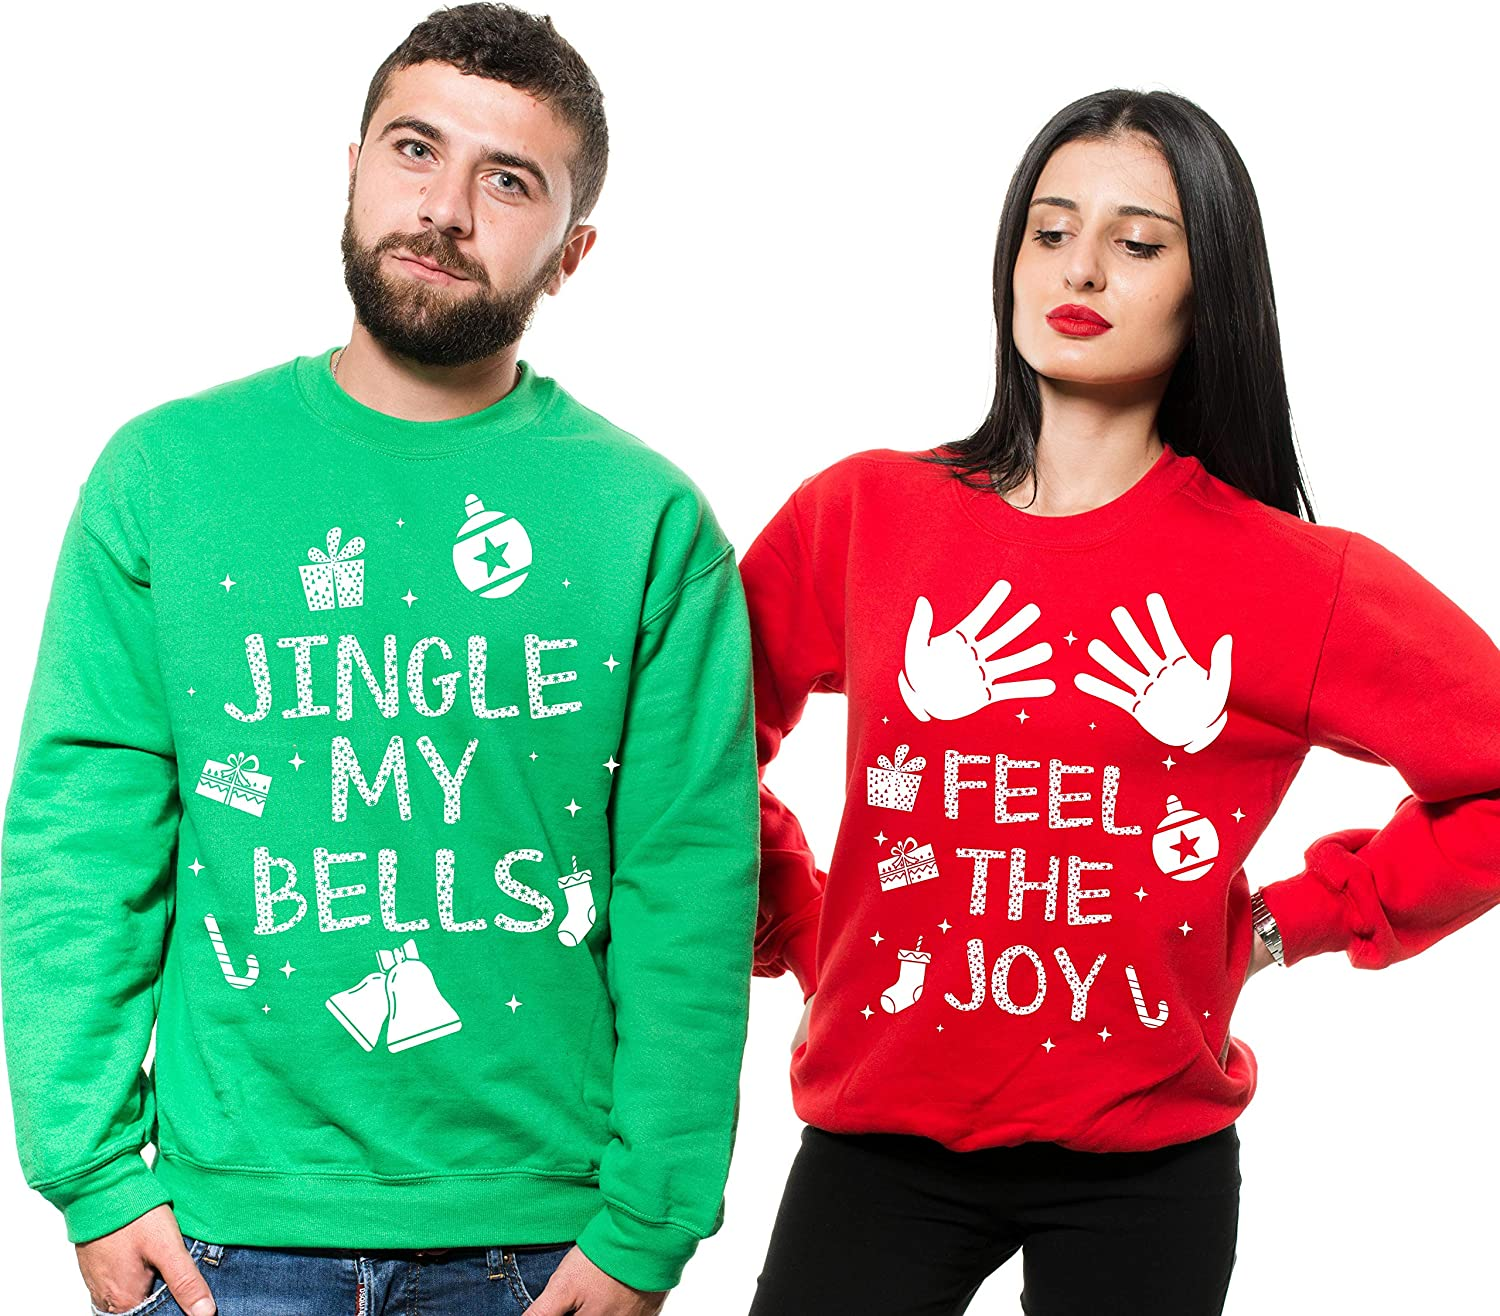 Silk Road Tees Christmas Green Red Sweatshirts Couple Matching Ugly Sweater Party Sweatshirts